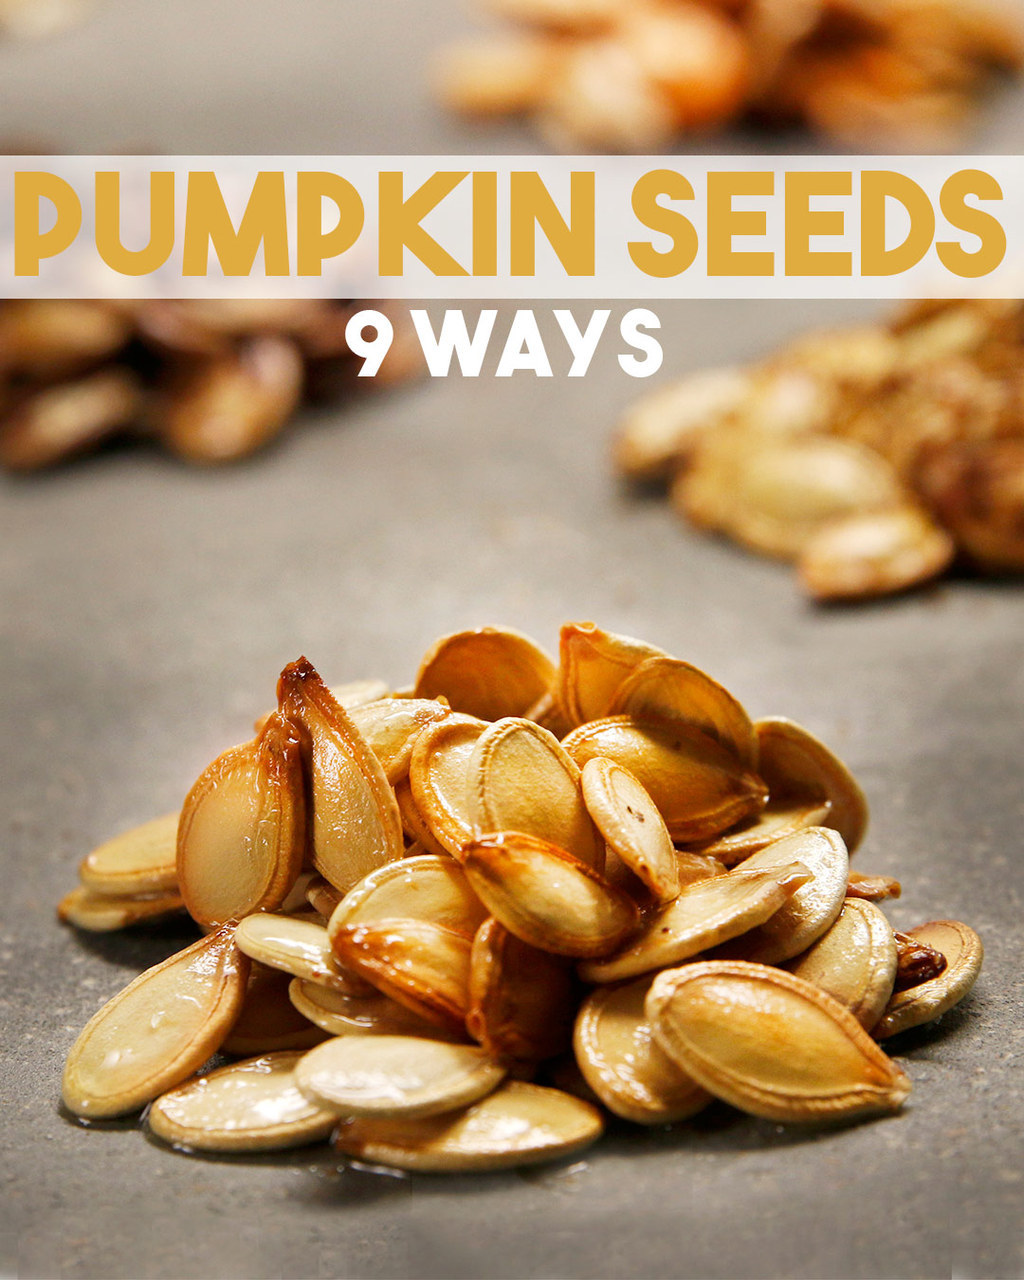 "Seasoned roasted pumpkin seeds with the headline ""PUMPKIN SEEDS 9 WAYS"""